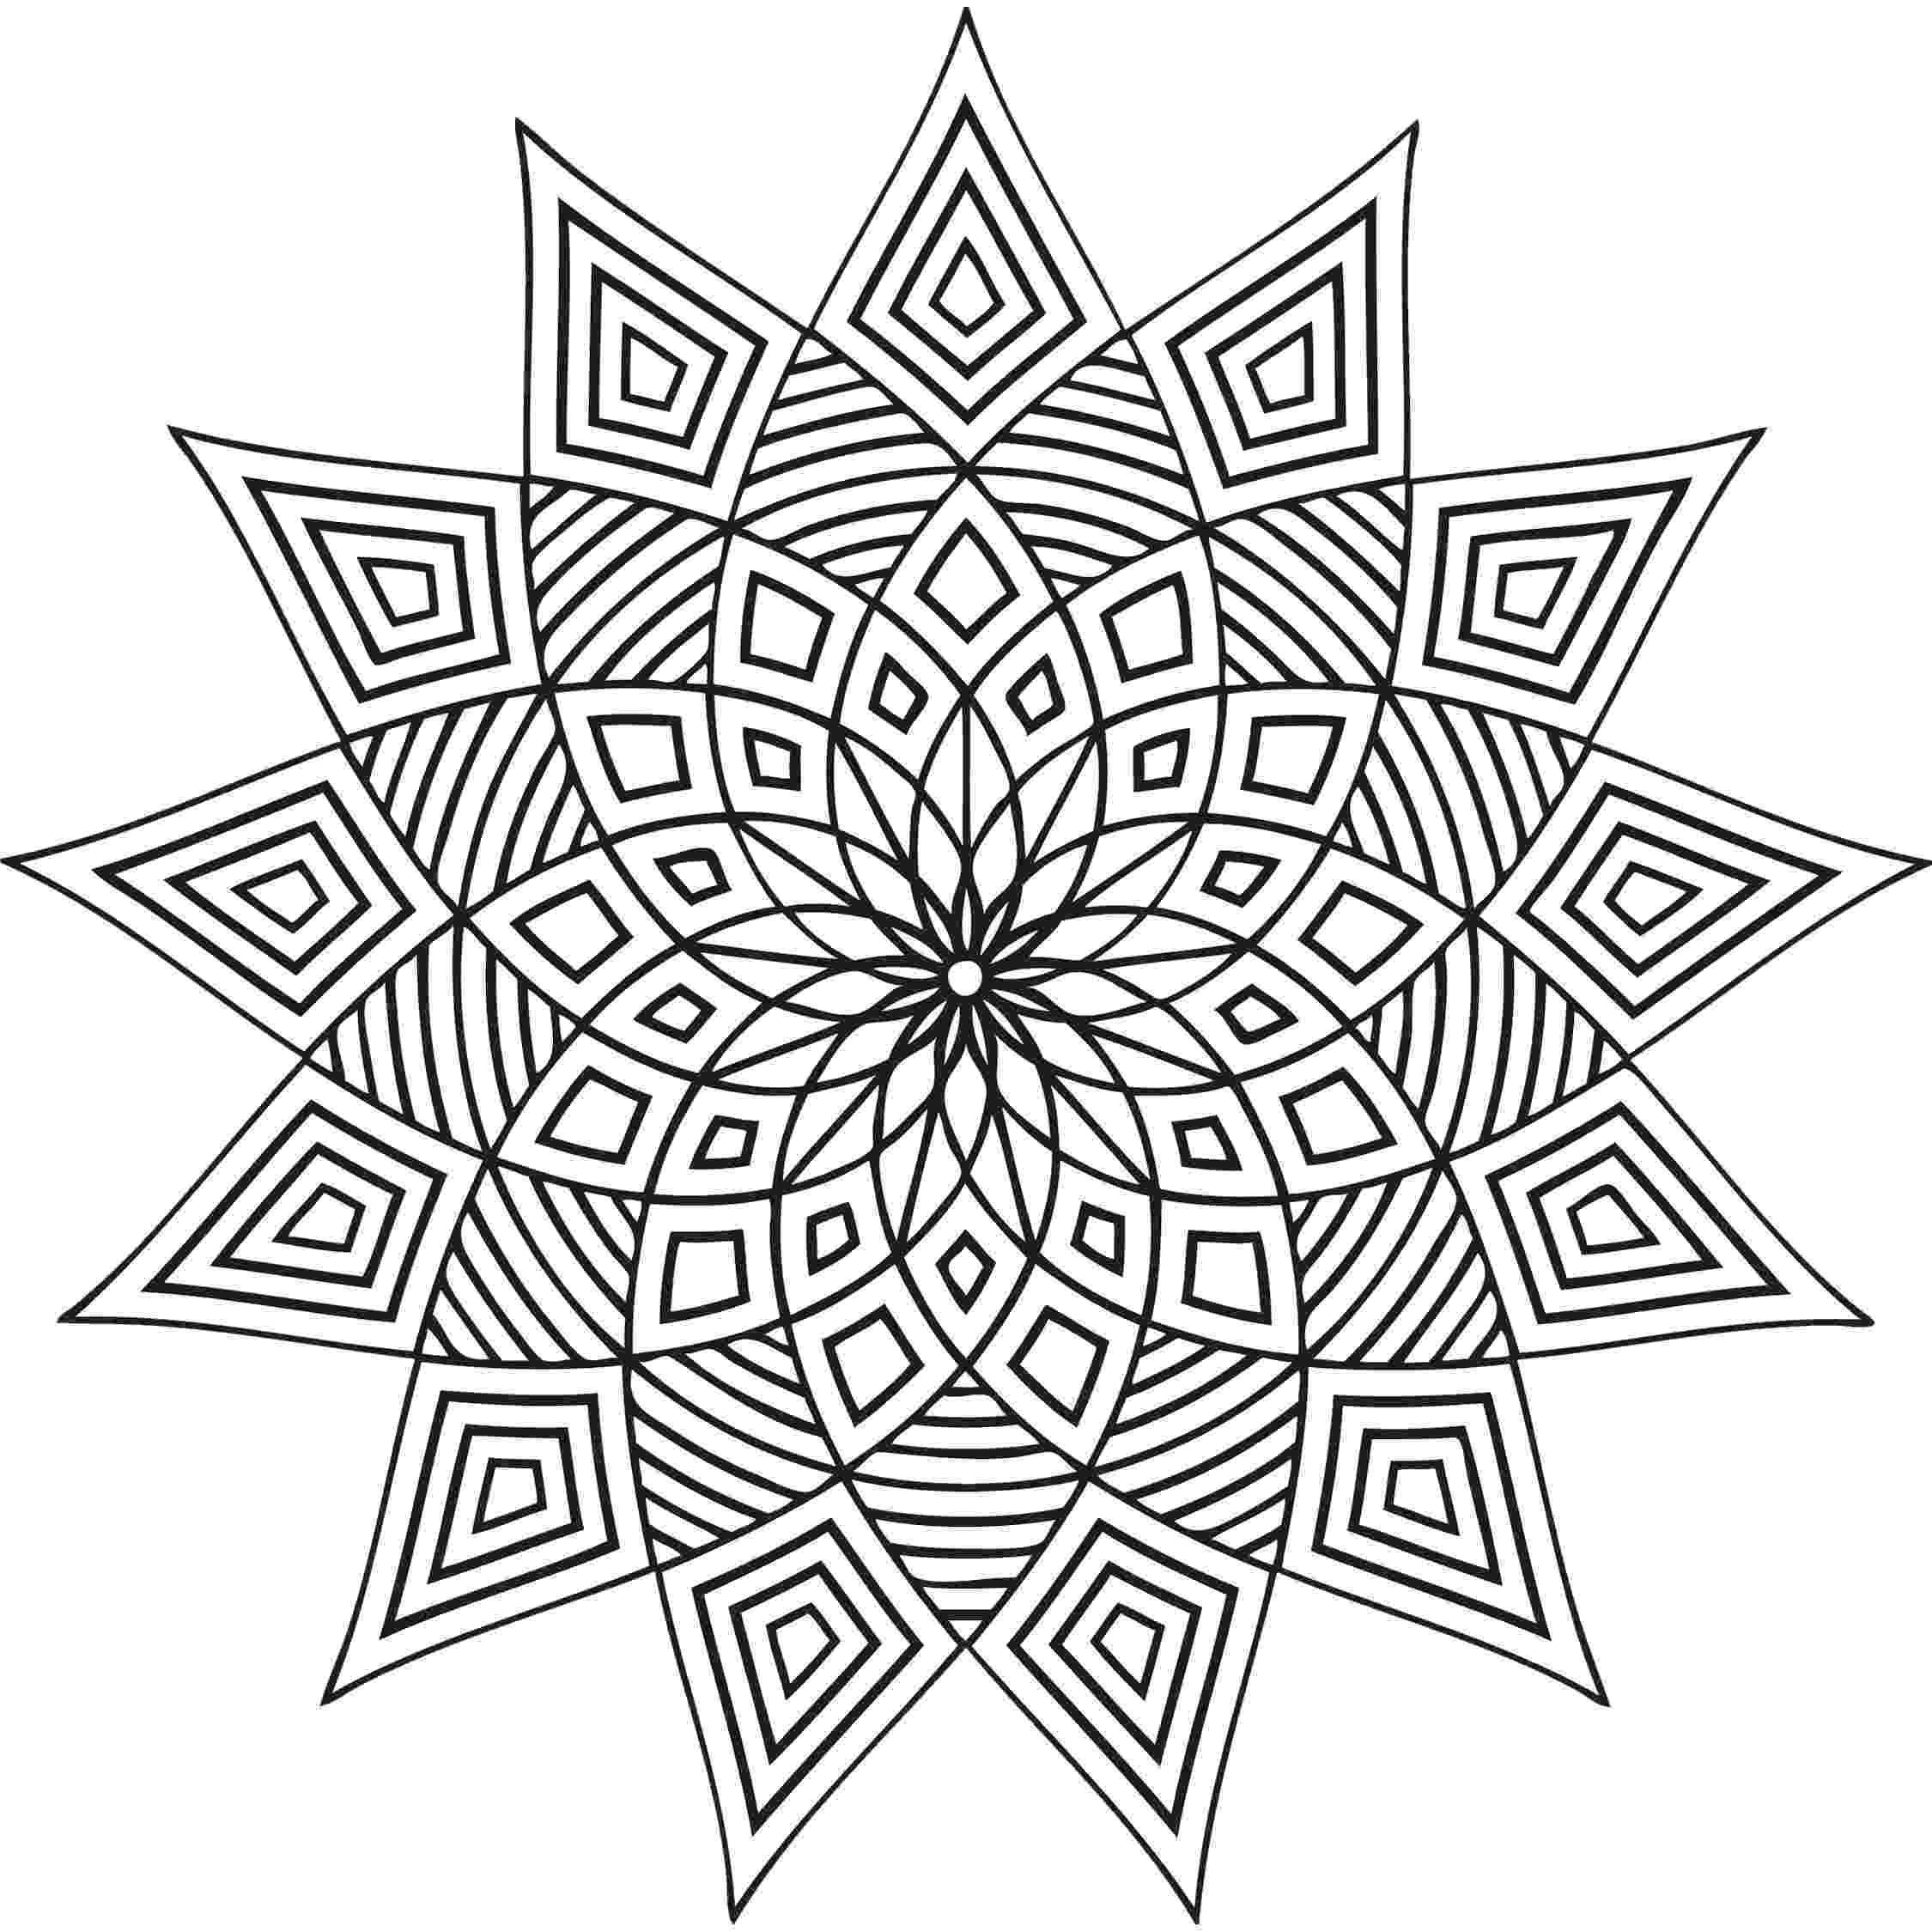 pattern coloring pages for adults flowers paisley design coloring pages hellokidscom pattern for adults coloring pages